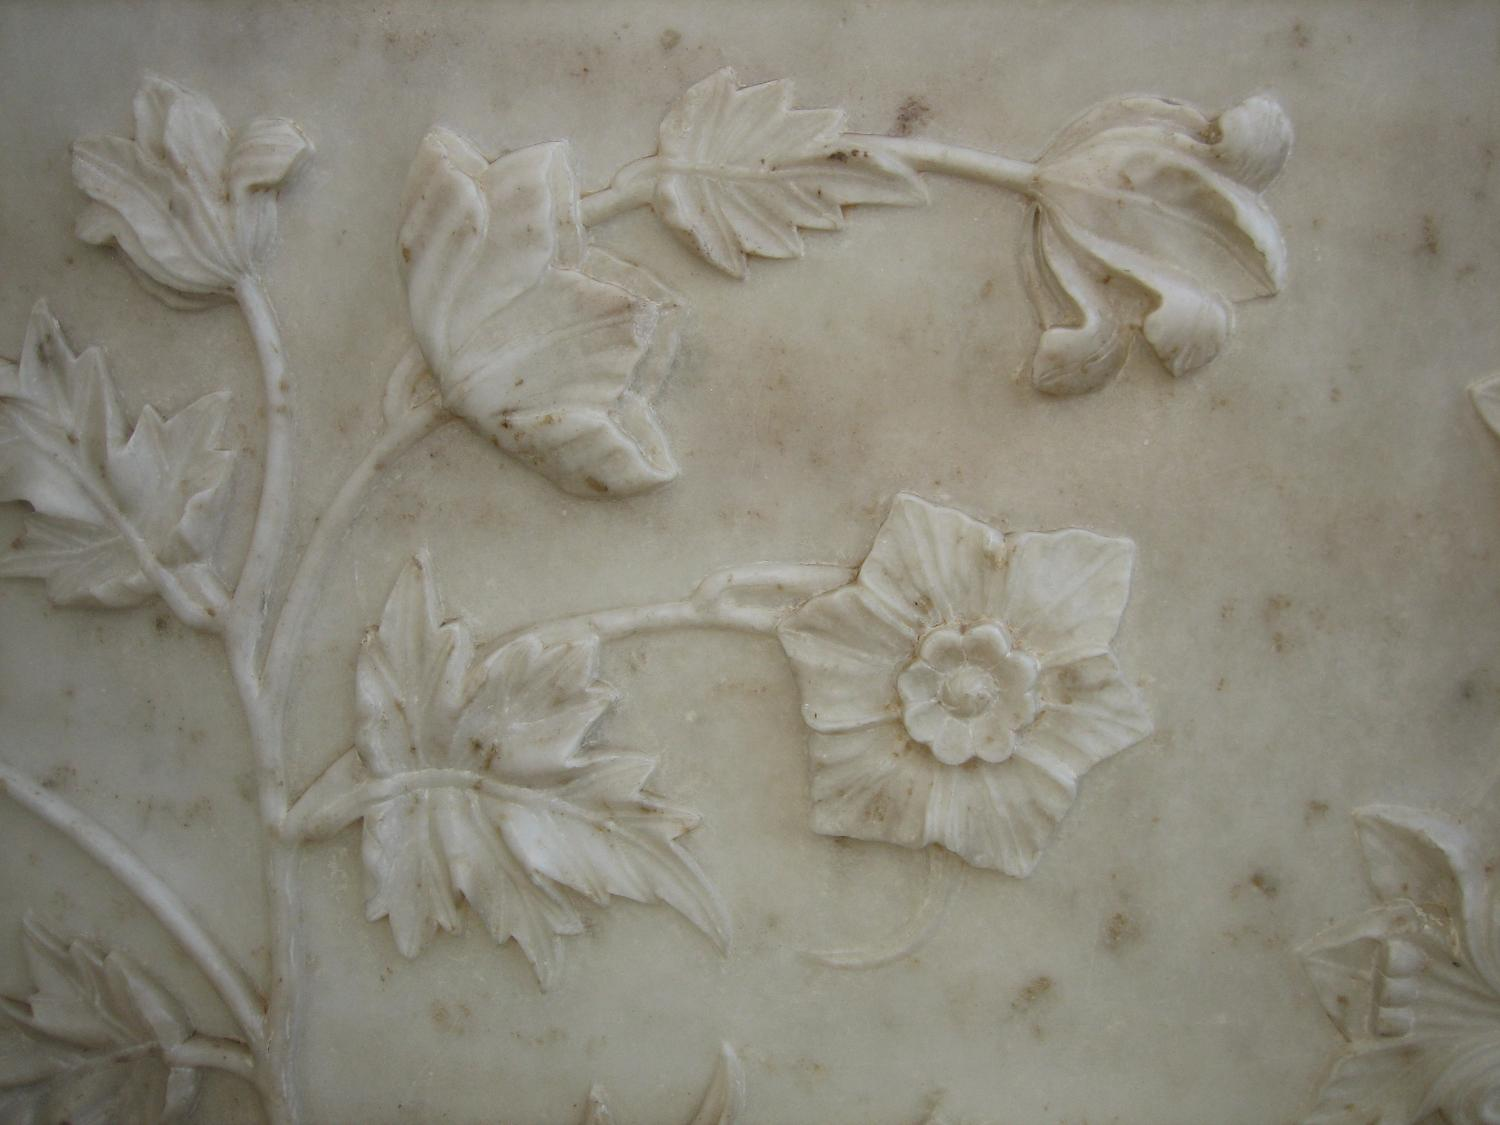 A realistic bas-relief floral design in marble at the Taj Mahal. The Taj Mahal is located in Agra, India. The Taj Mahal was built by Shah Jahan as a memorial to his favorite wife.